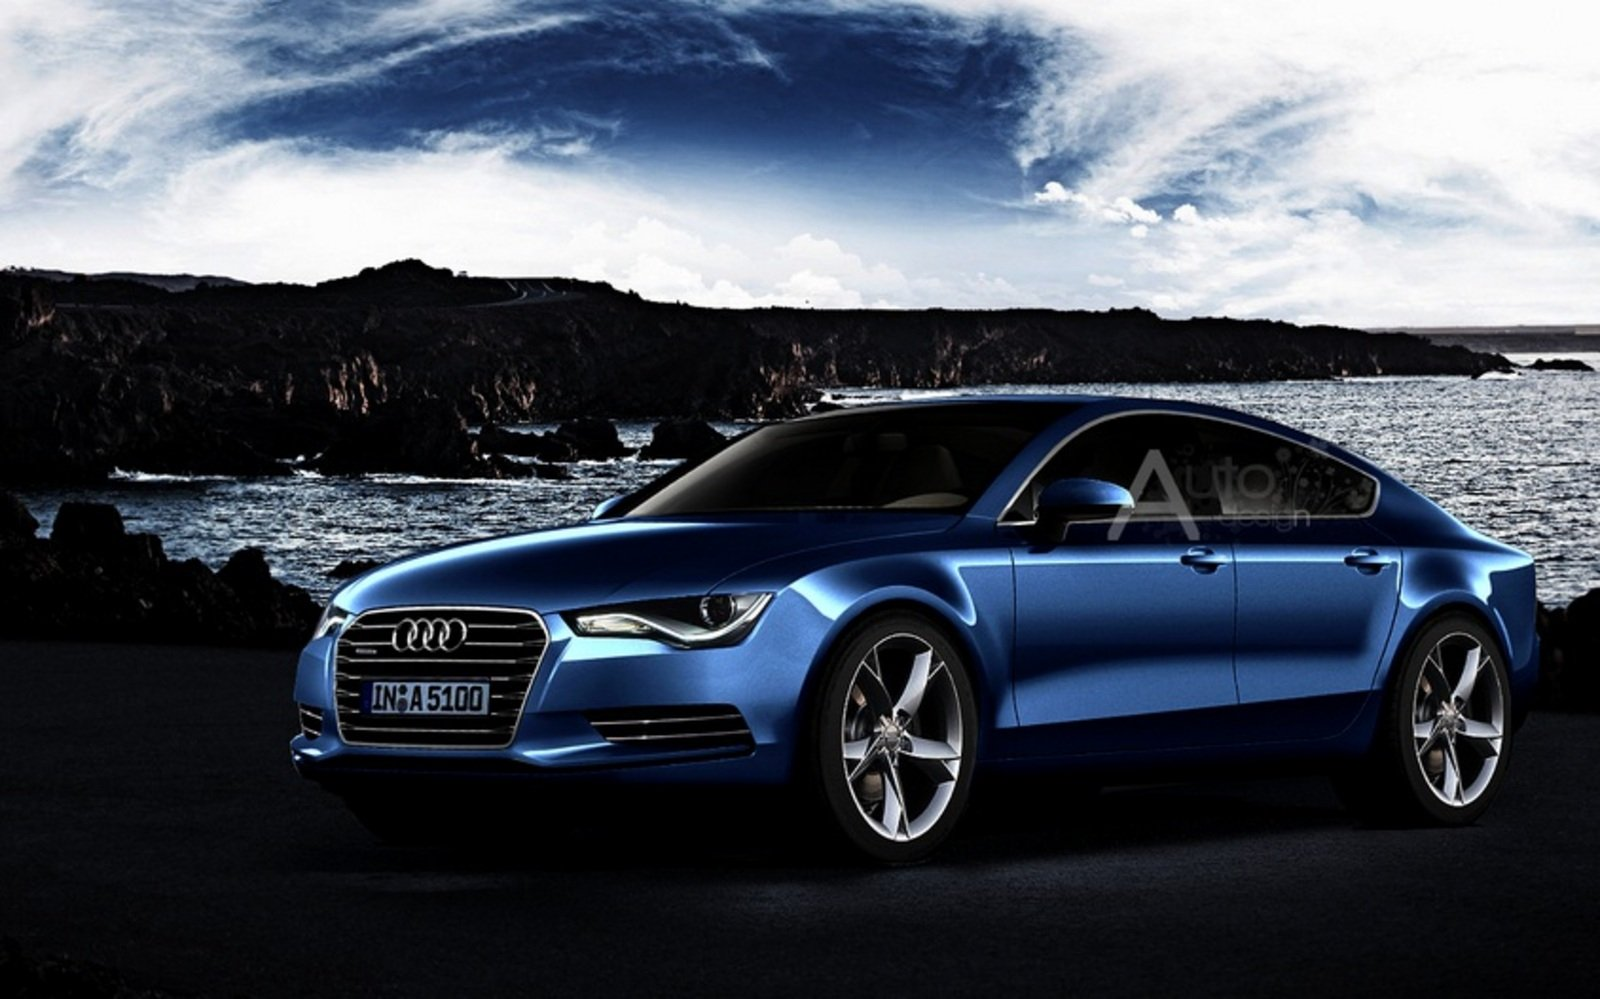 2011 Audi A7 Sportback Preview Review Top Speed